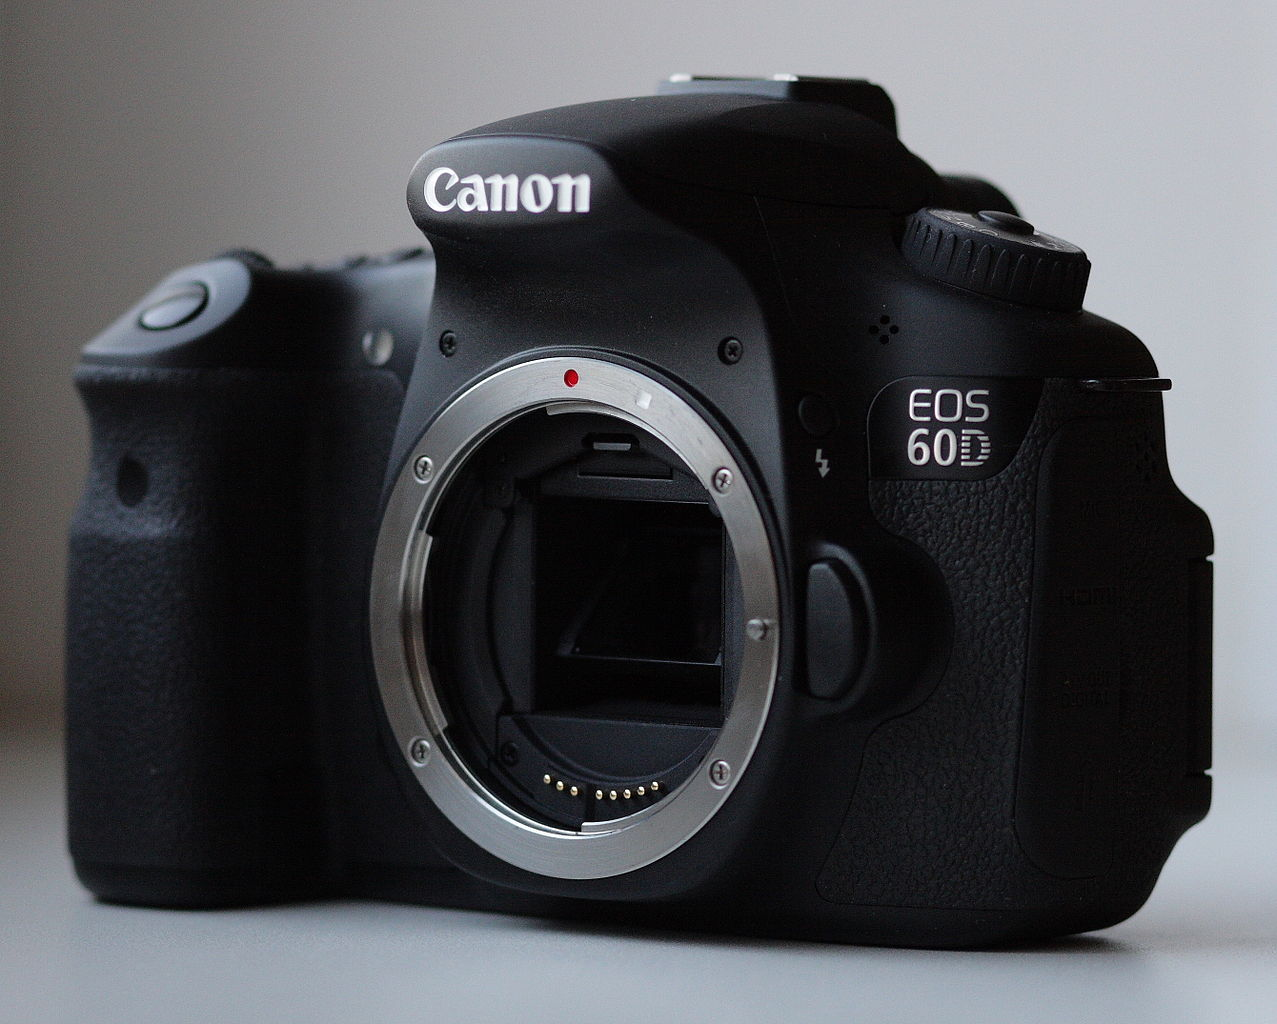 Canon Eos 70d Page 5 Camera News At Cameraegg Body 60d